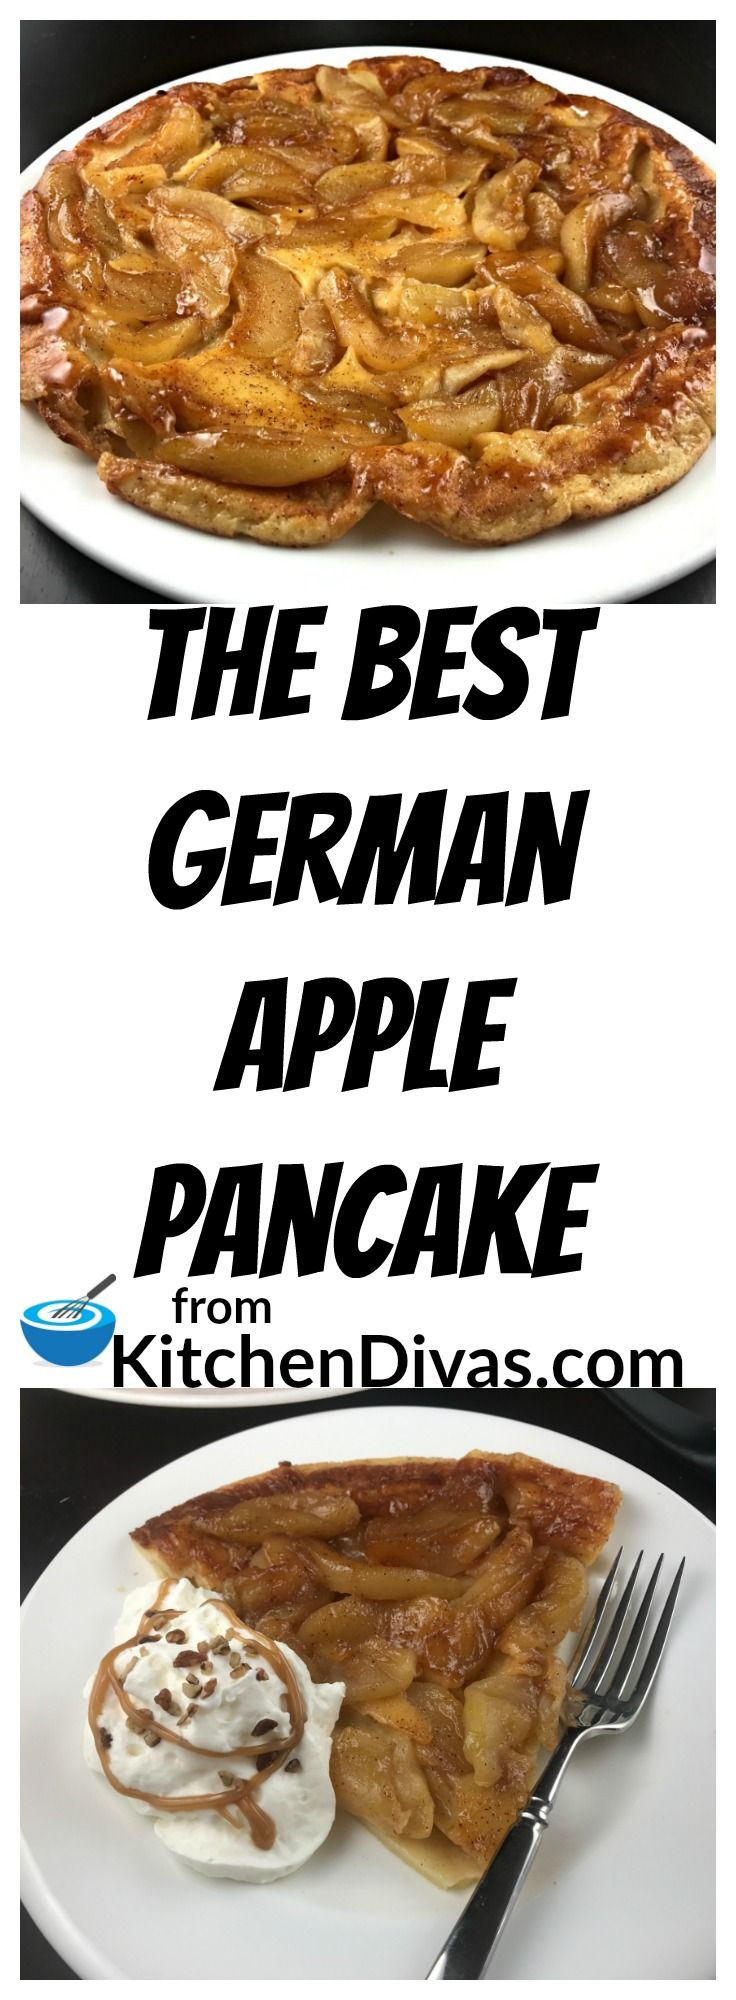 307 best **German Foods** images on Pinterest | Drink, German ...